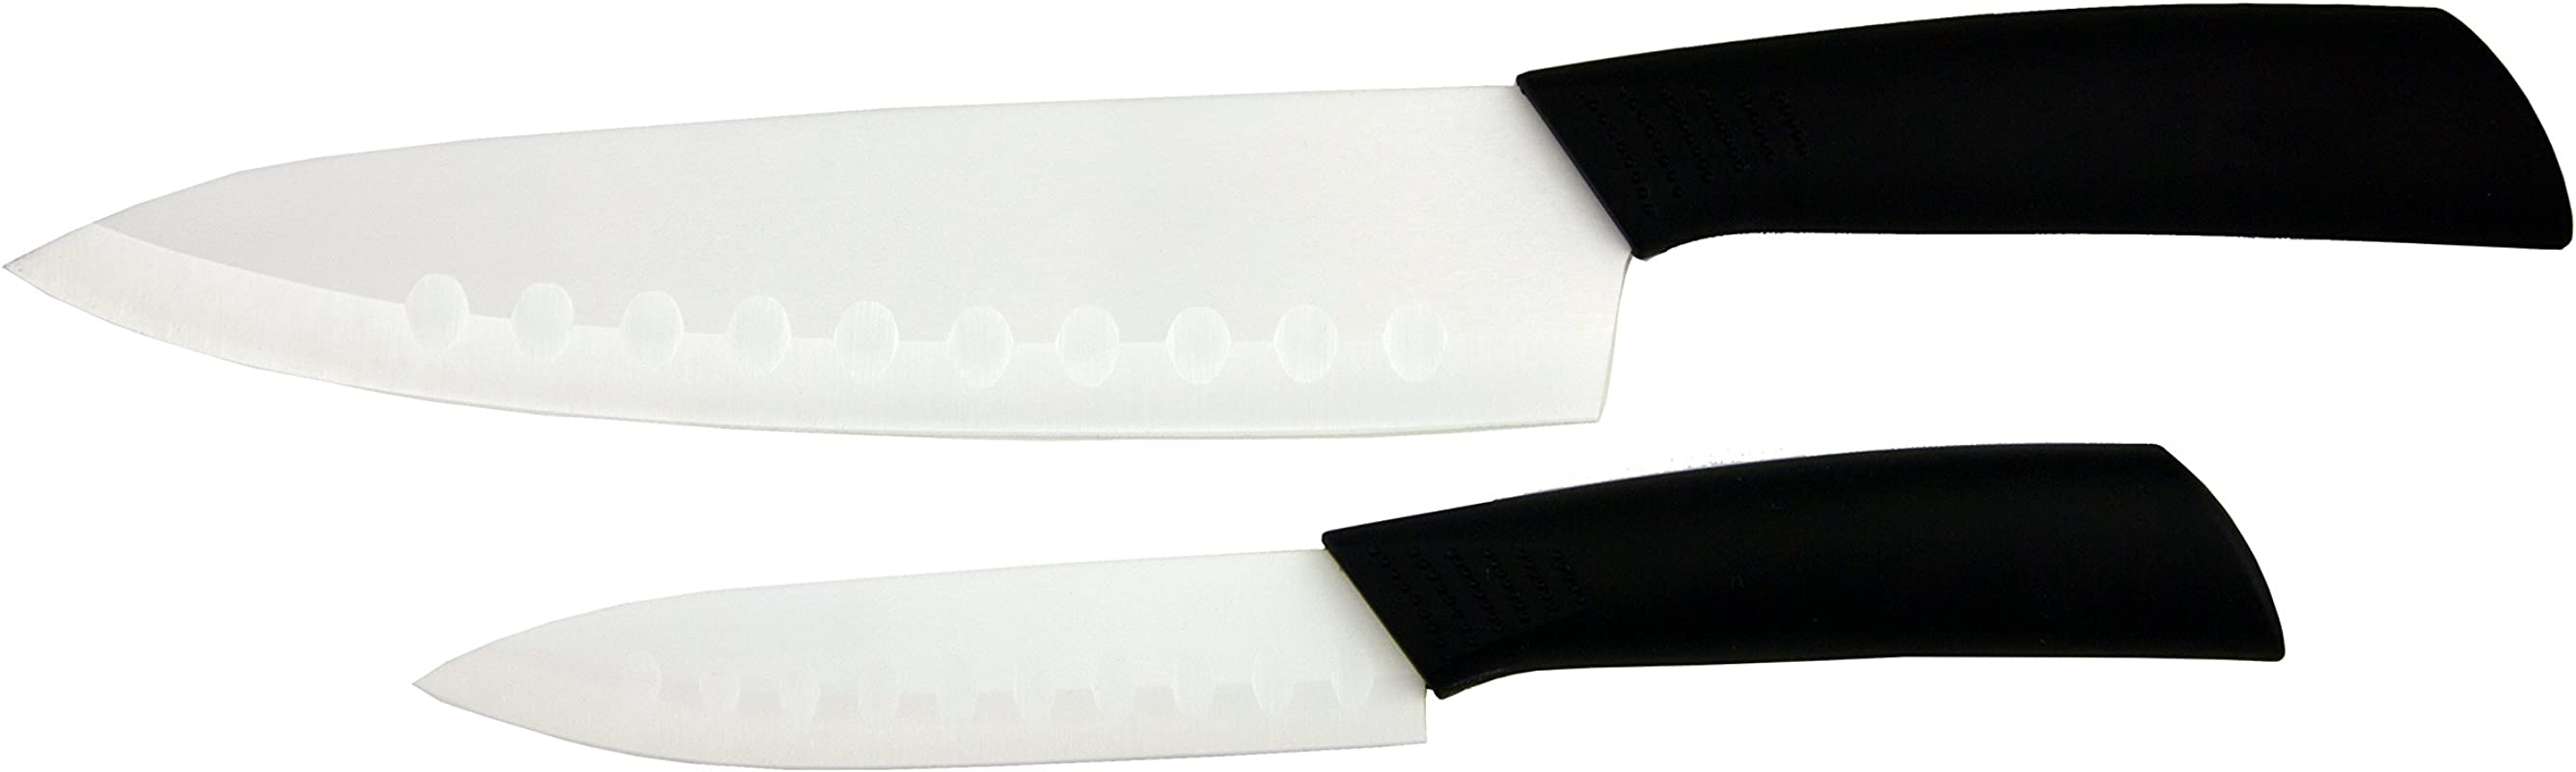 Glip 2 Piece Ceramic Knife Set Includes 5 Inch 8 Inch White Blade With Black Handle